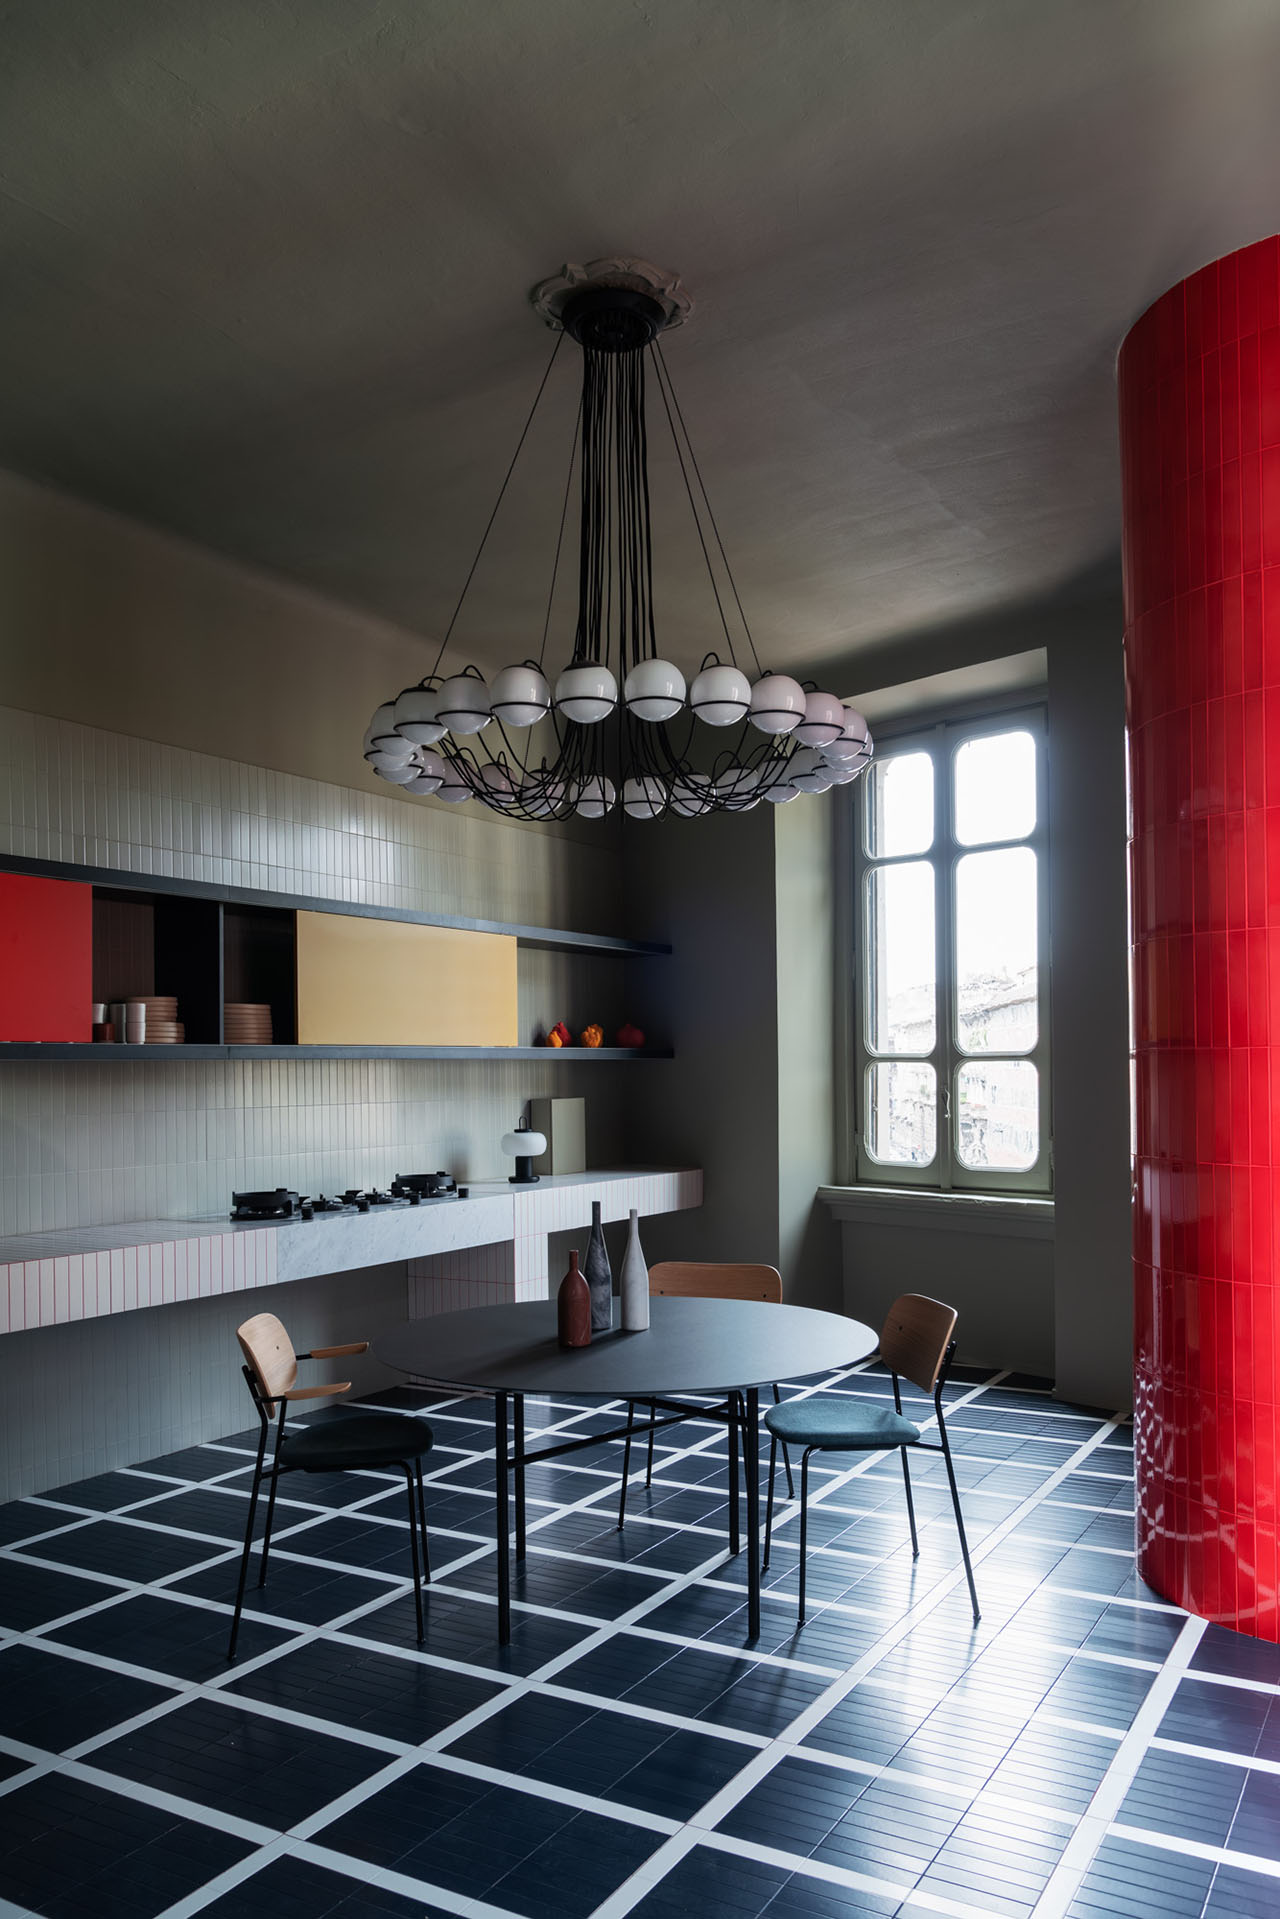 Elisa Ossino and Josephine Akvama Hoffmeyer, creative directors and founders of H+O, revealed their apartment installation, Perfect Darkness.Photo by Giorgio Possenti.